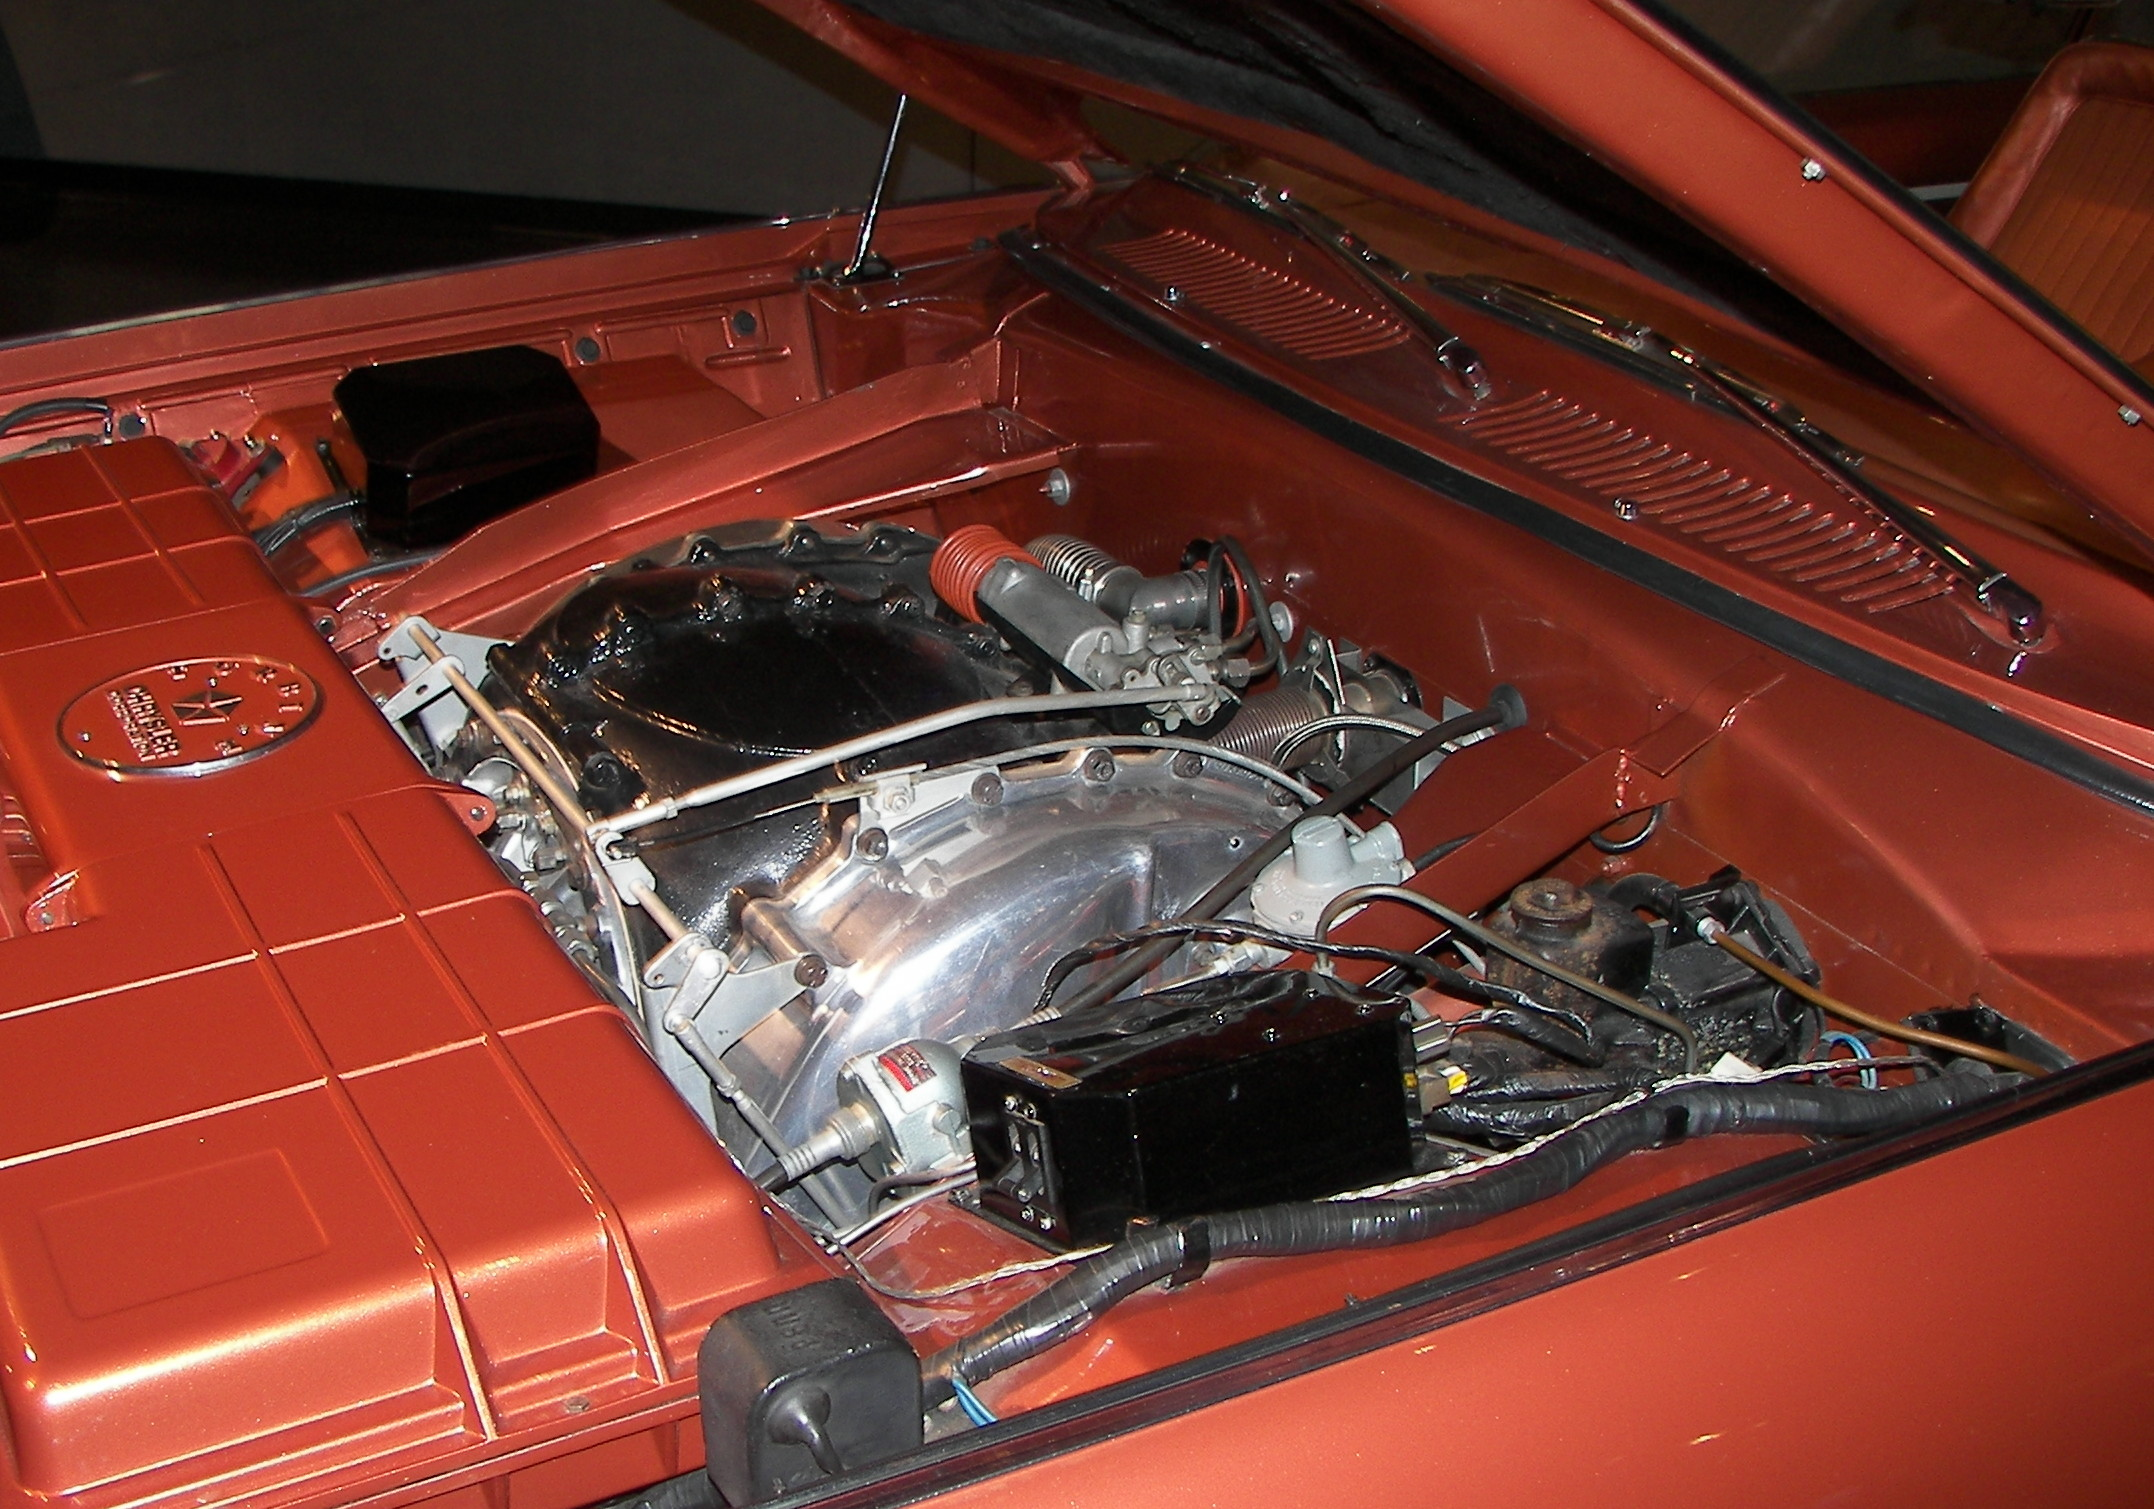 Chrysler Turbine Engines Wikipedia